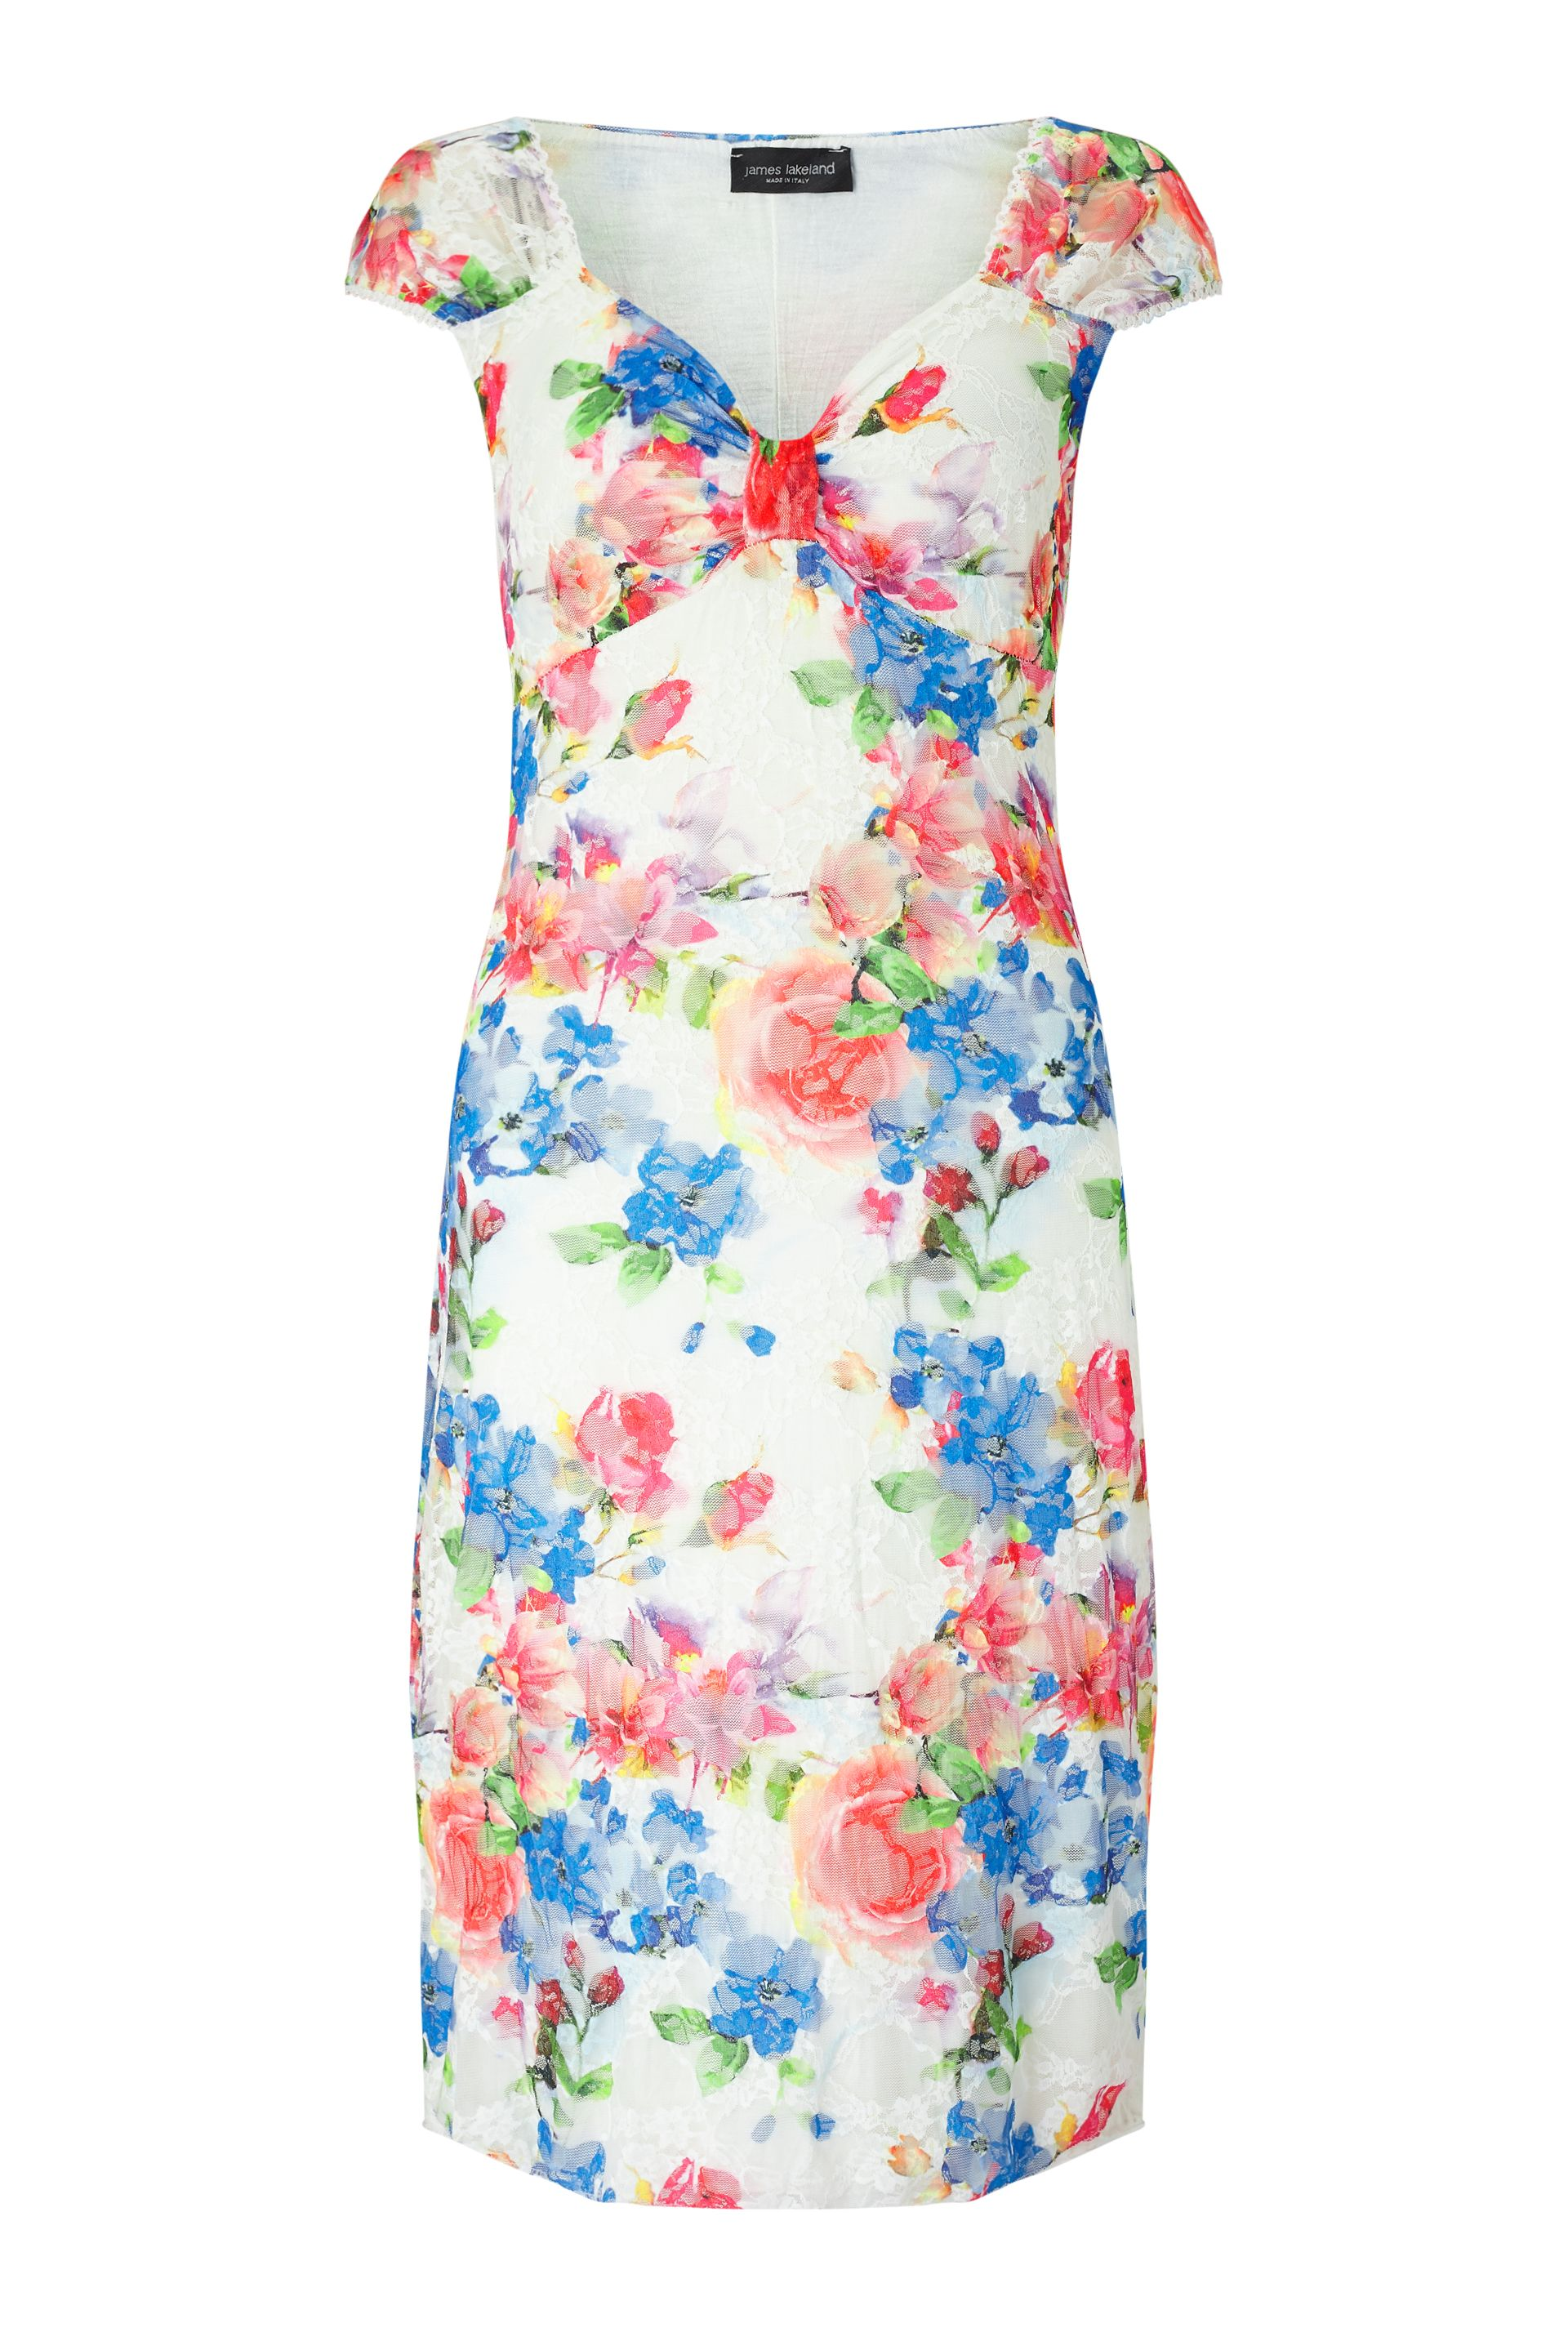 James Lakeland Floral Lace Dress, Multi-Coloured